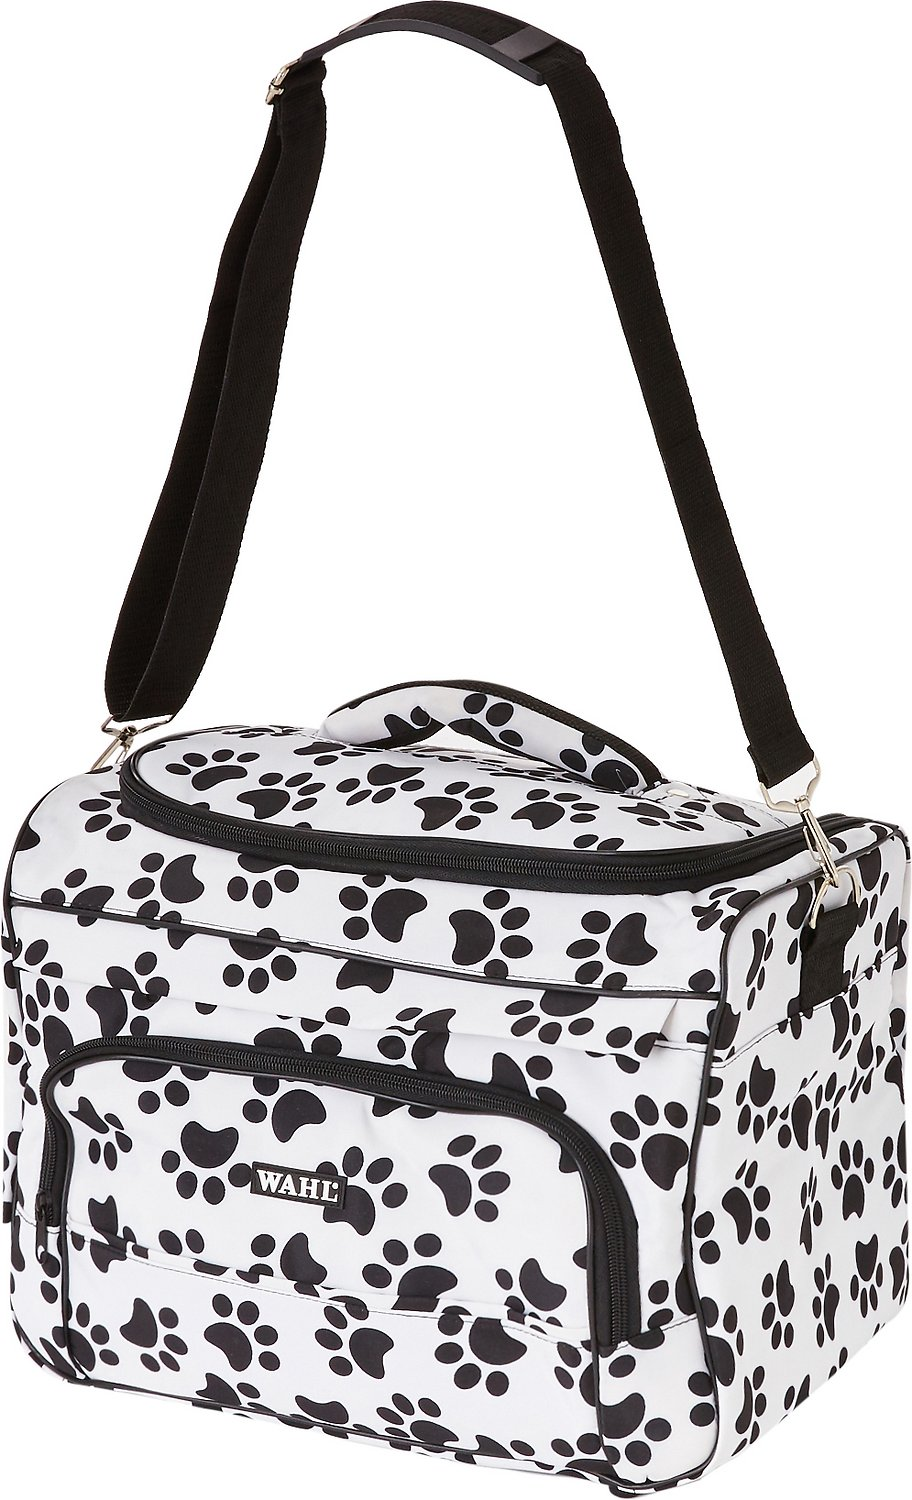 Wahl Paw Print Travel Tote Black